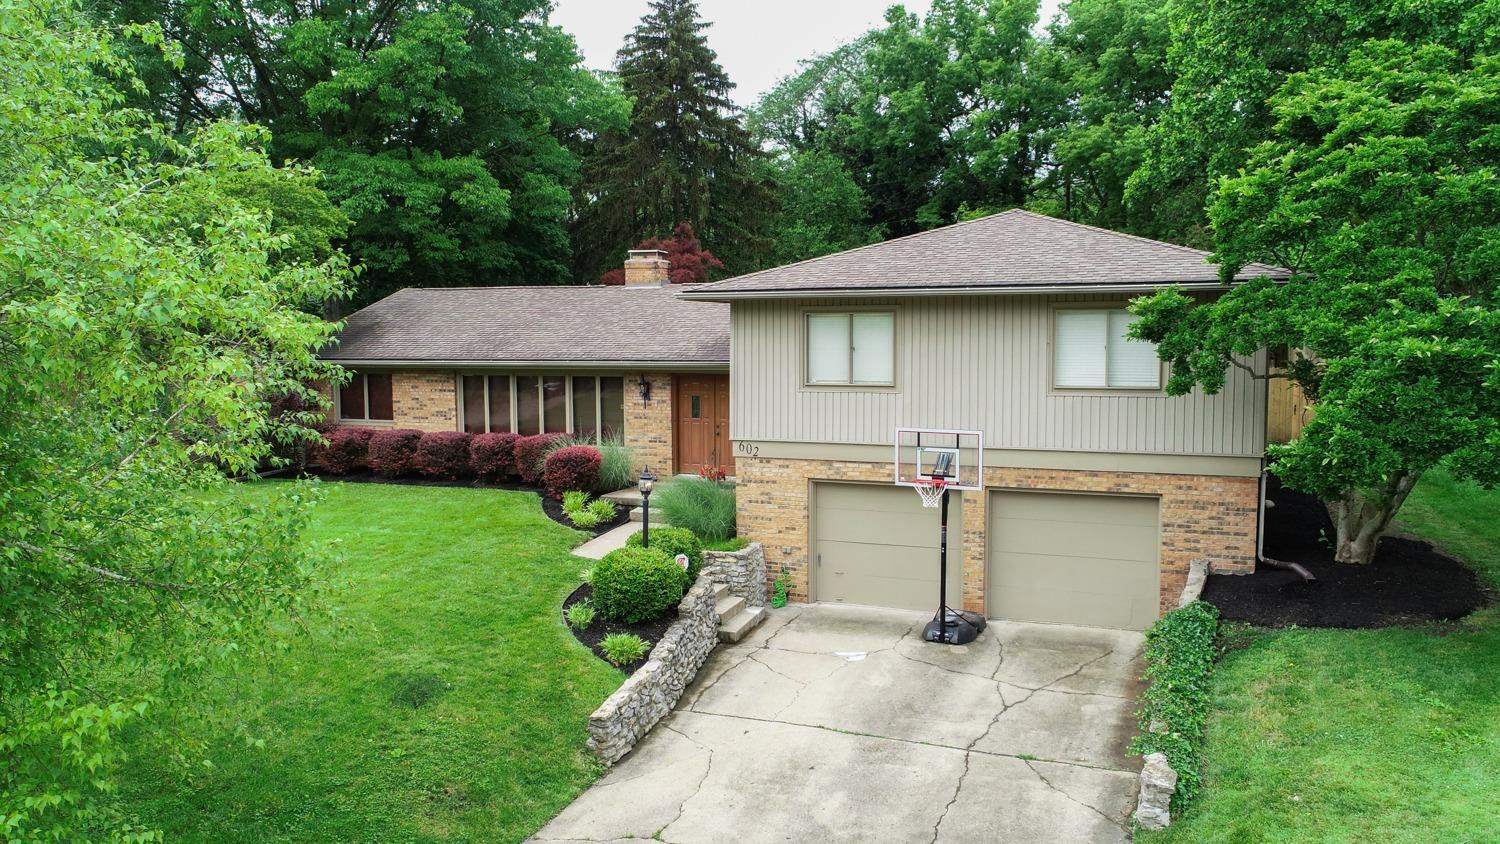 Property for sale at 602 Dorset Drive, Middletown,  Ohio 45044